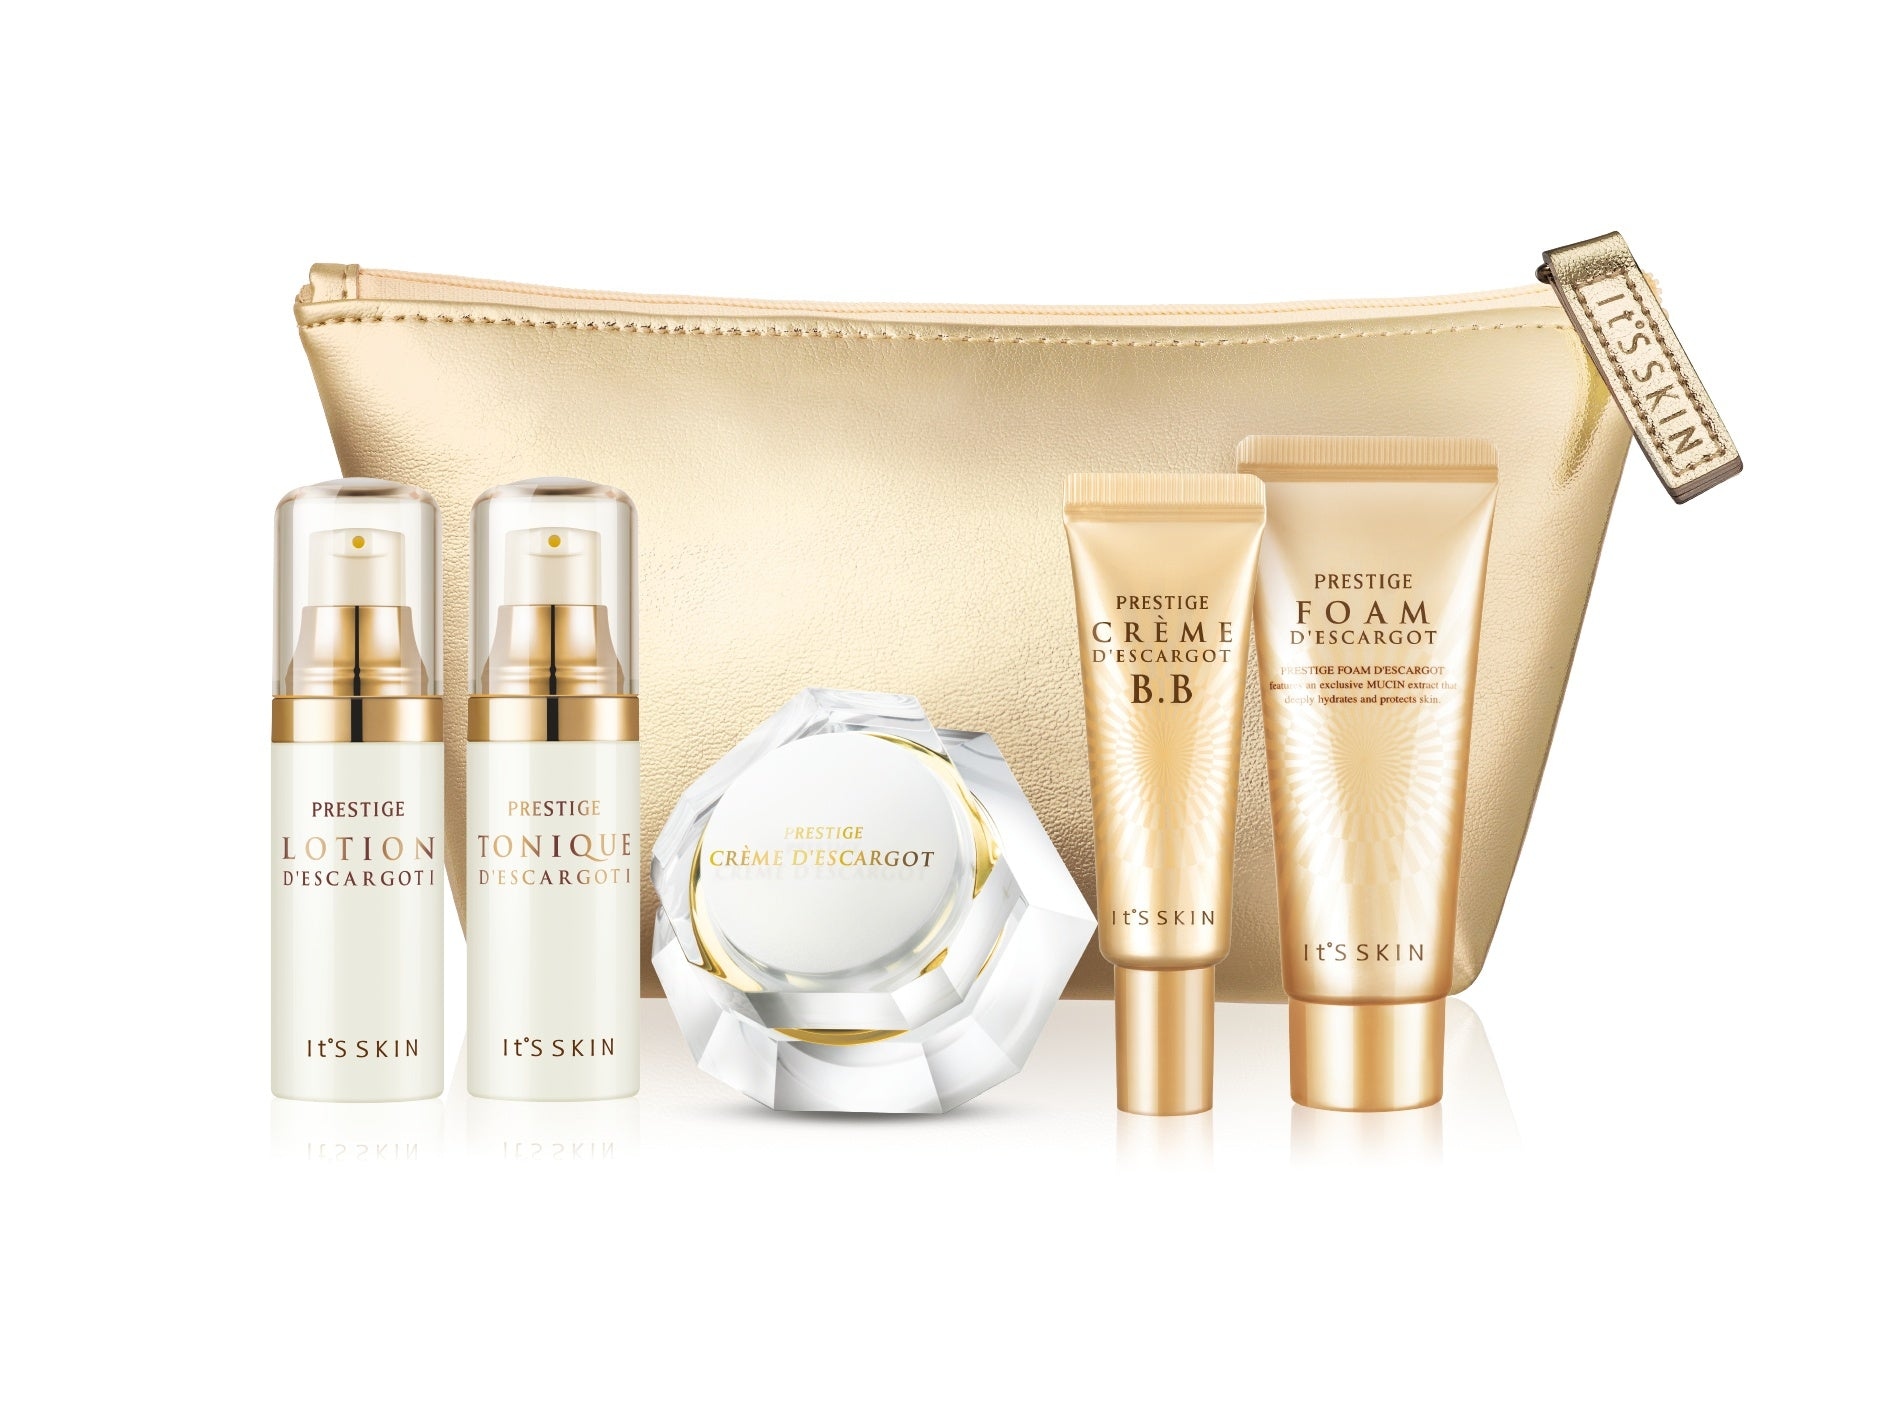 Health & Beauty > Personal Care > Cosmetics > Skin Care > Lotion & Moisturizer - Prestige D'Escargot Special Set Zestaw Mini-produktów